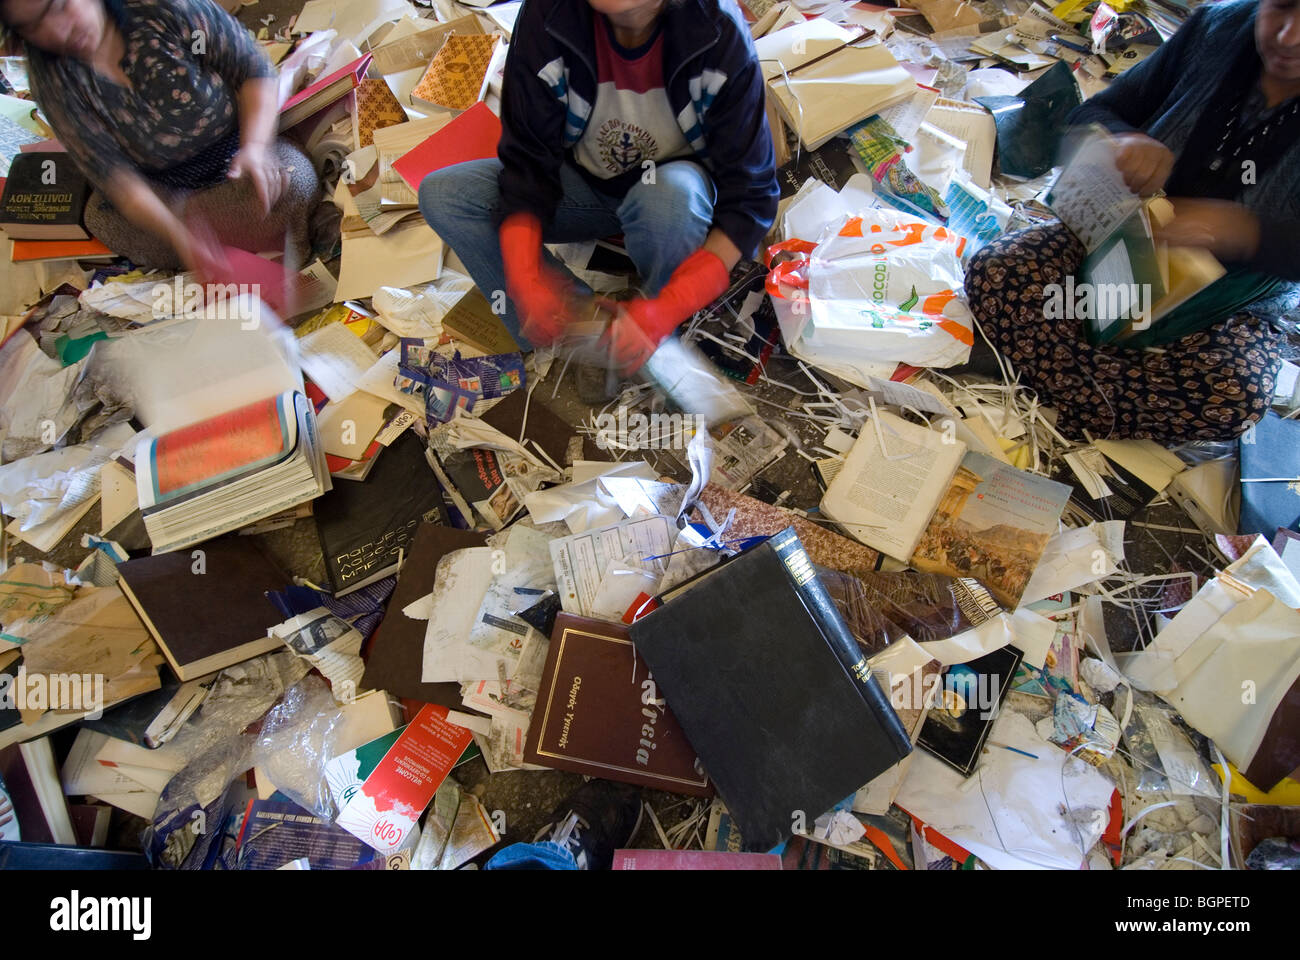 Women sorting manually different types of waste paper before the recycling process Stock Photo